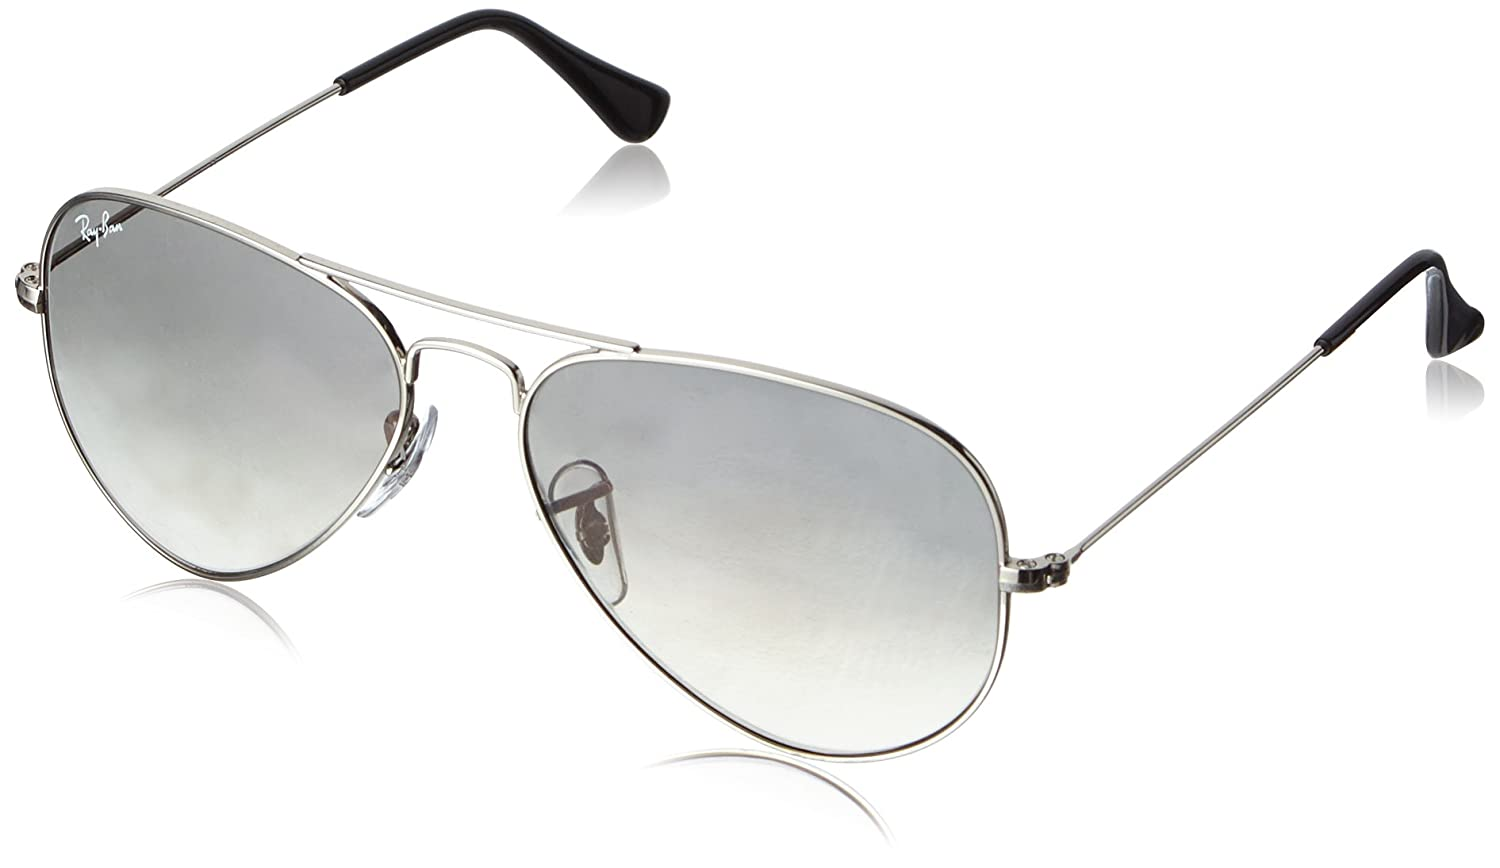 black ray ban aviators  Ray-Ban 0rb3025 Polarized Aviator Sunglasses, Black, 58 mm: Amazon ...